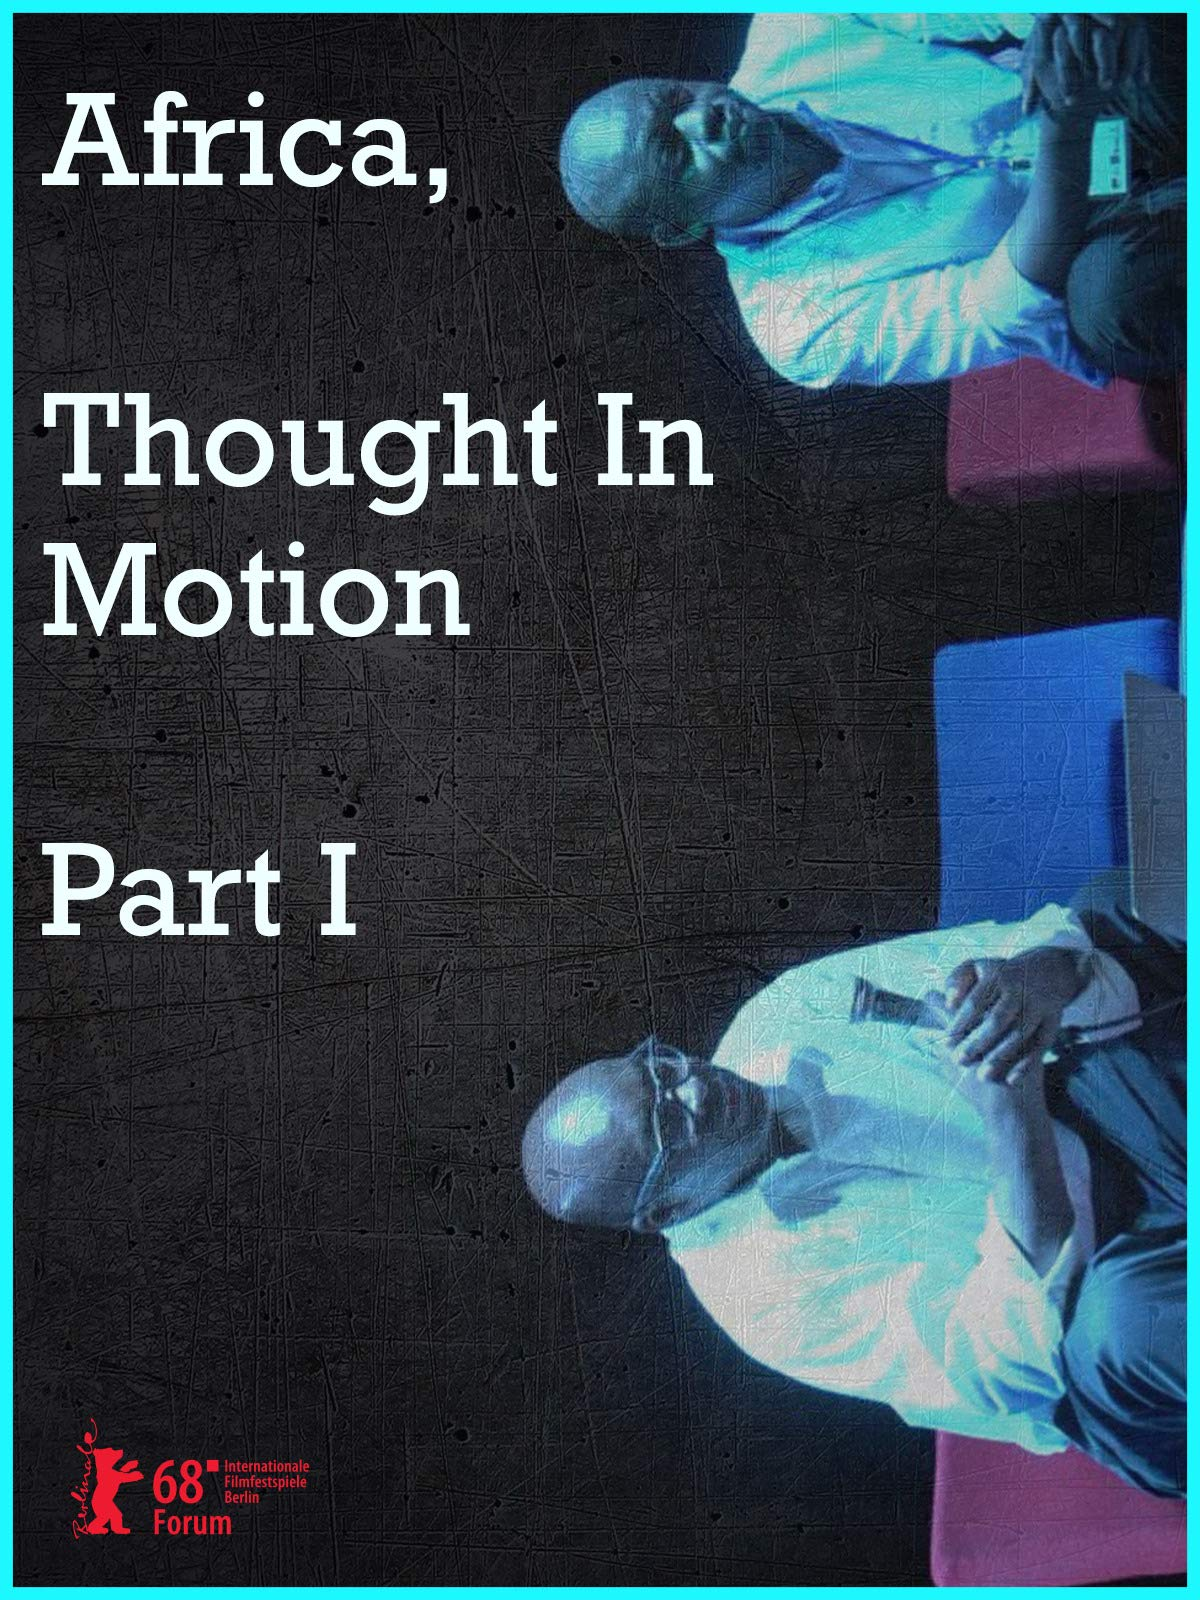 Africa, Thought In Motion Part 1